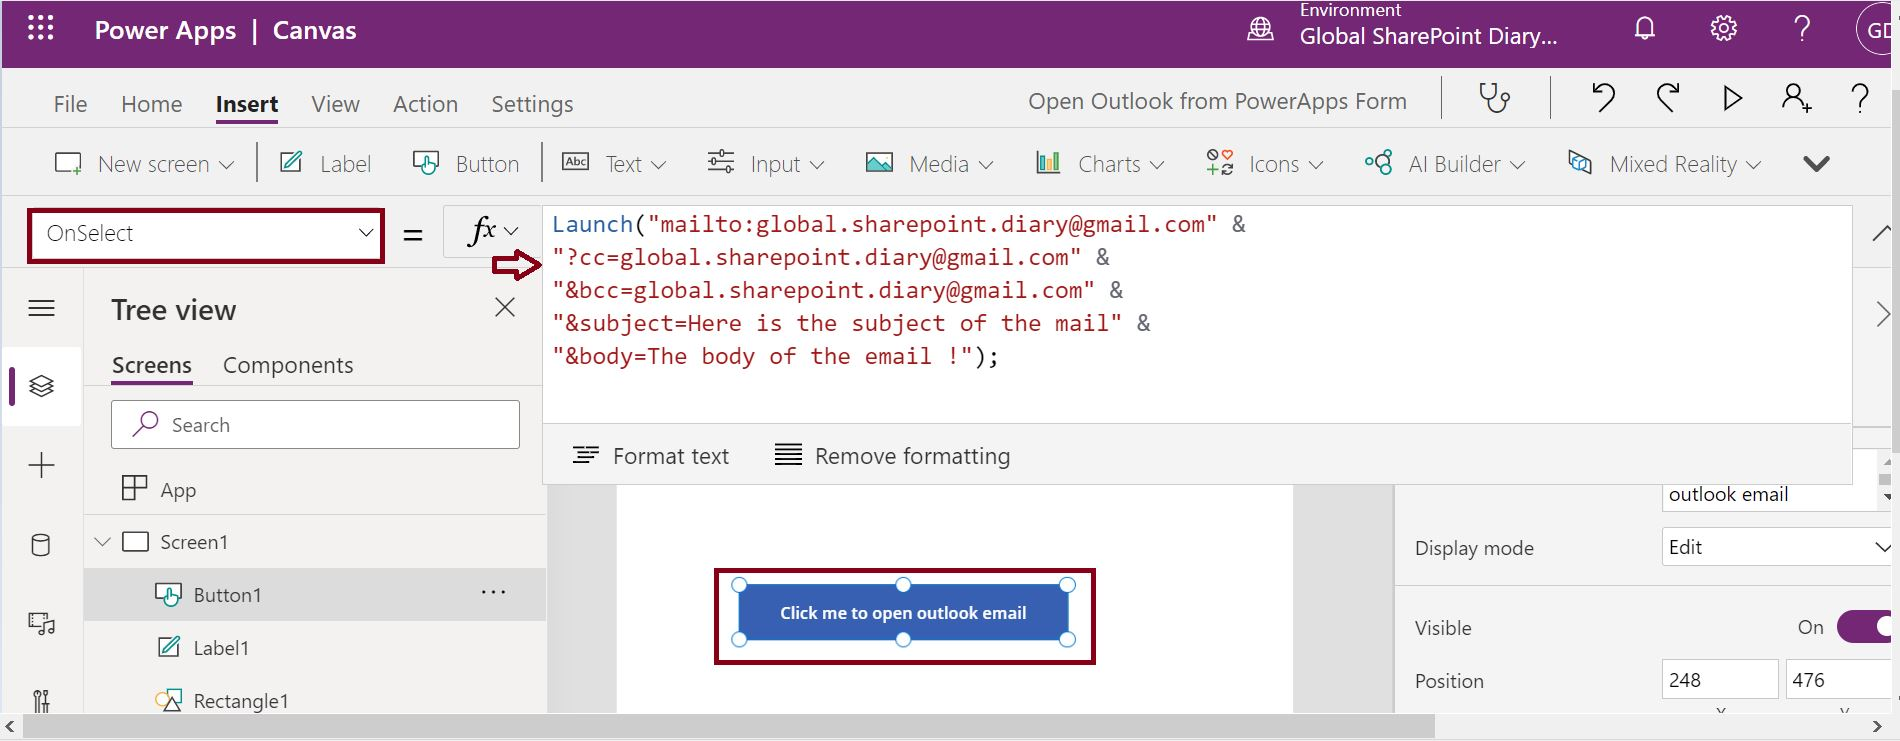 Launch function to open Outlook in PowerApps